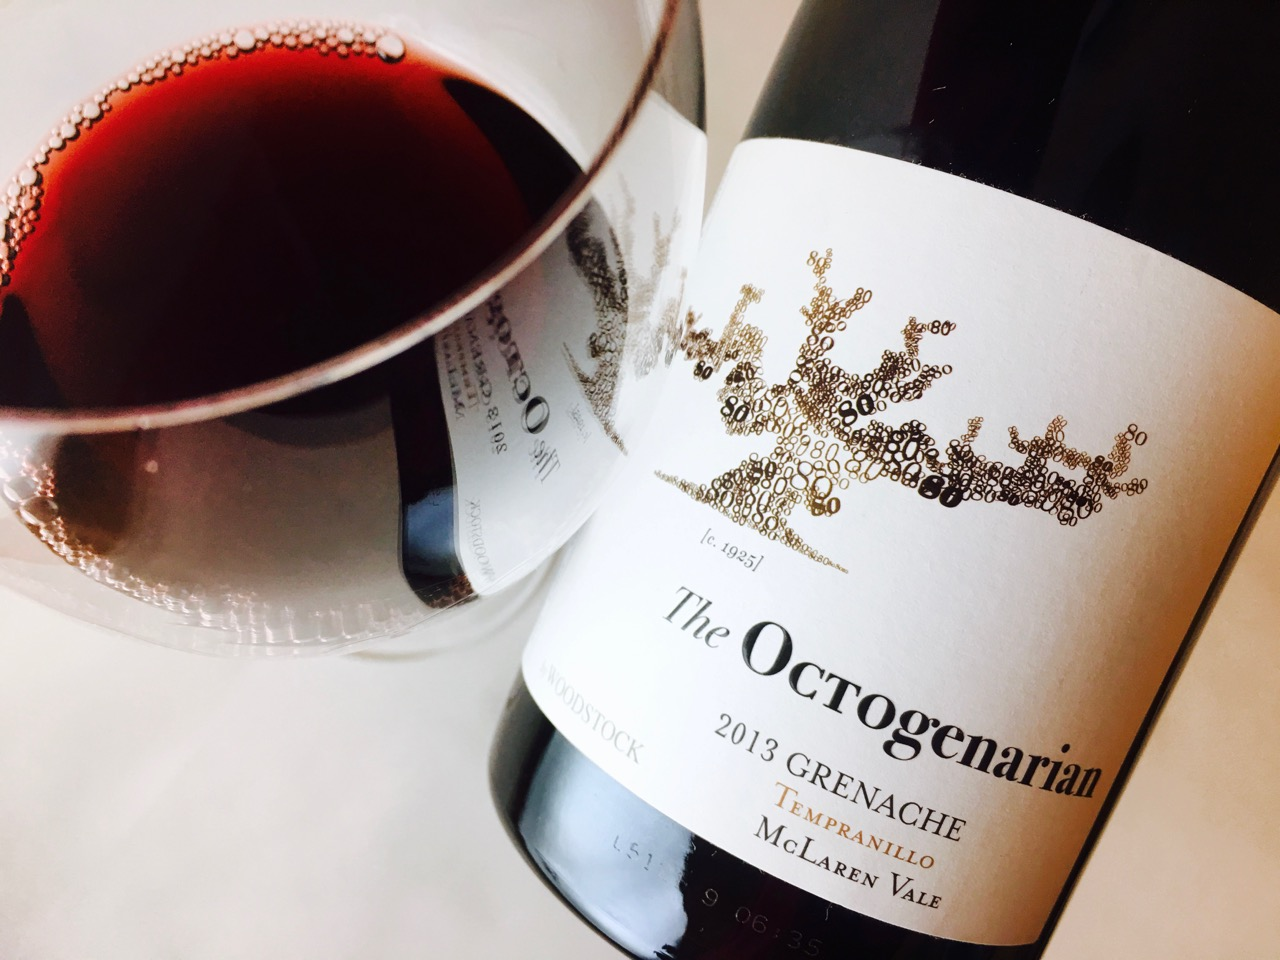 2013 Woodstock The Octogenarian Grenache Tempranillo McLaren Vale